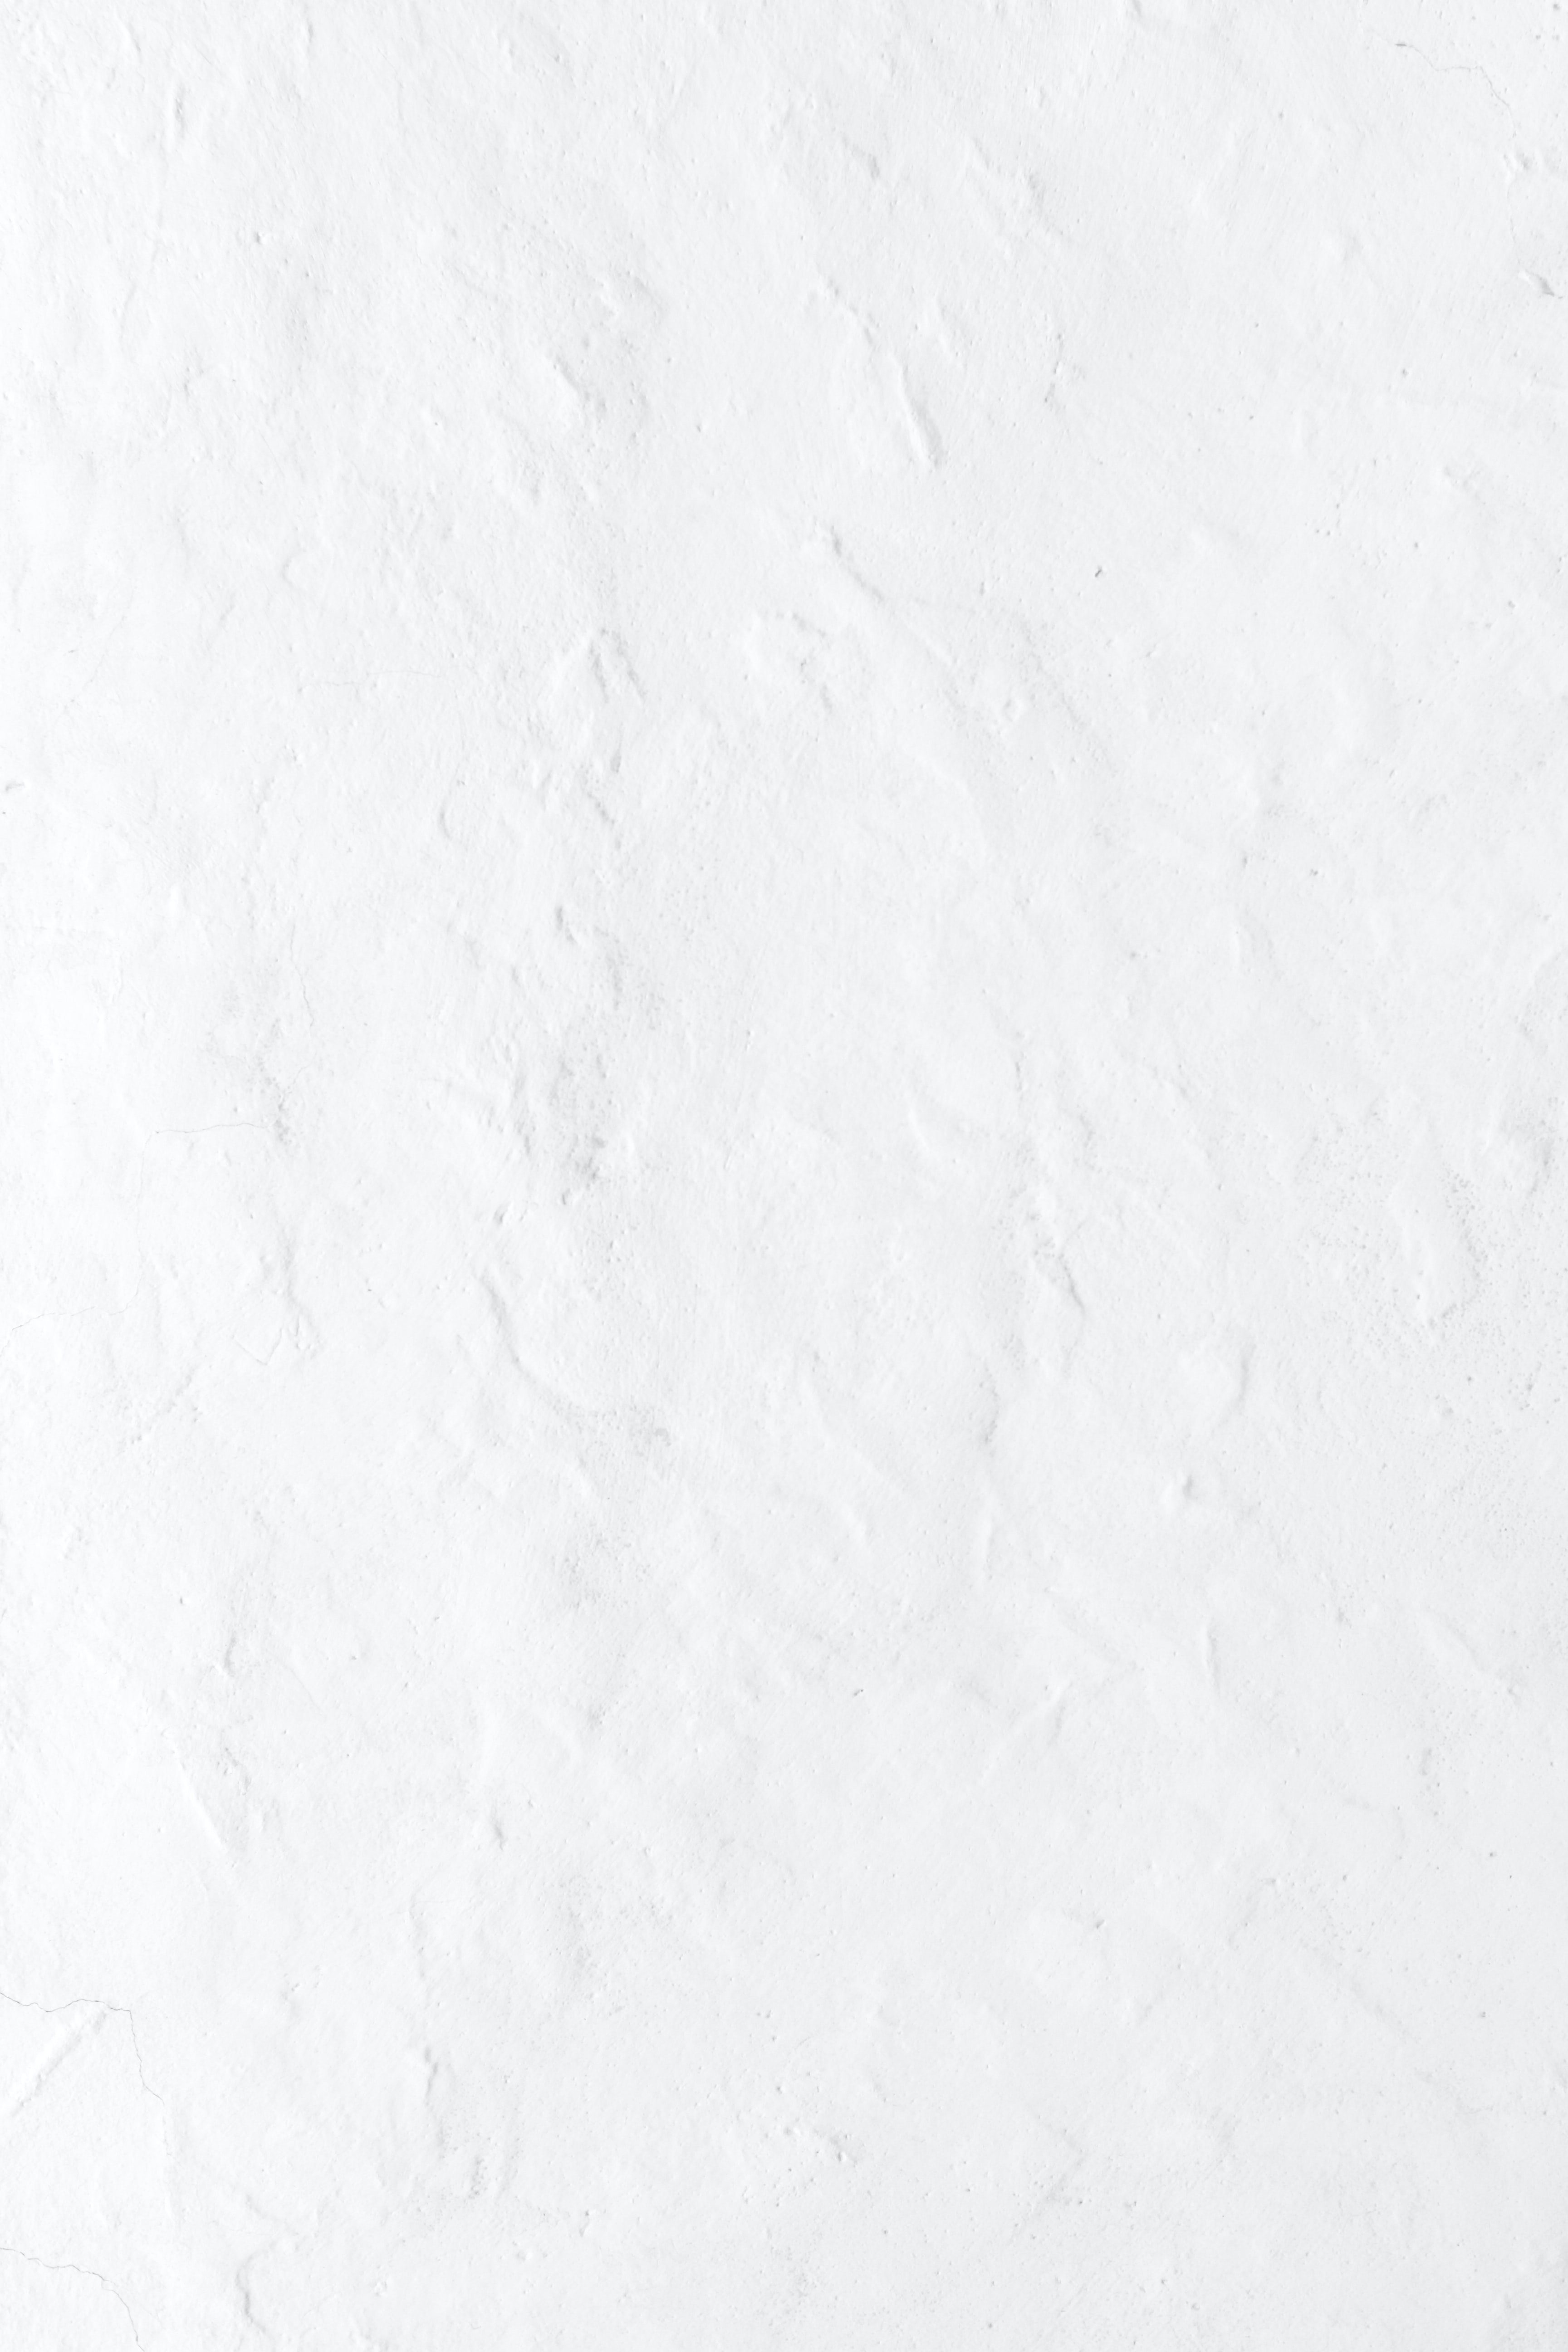 500 White Wall Pictures Hd Download Free Images On Unsplash